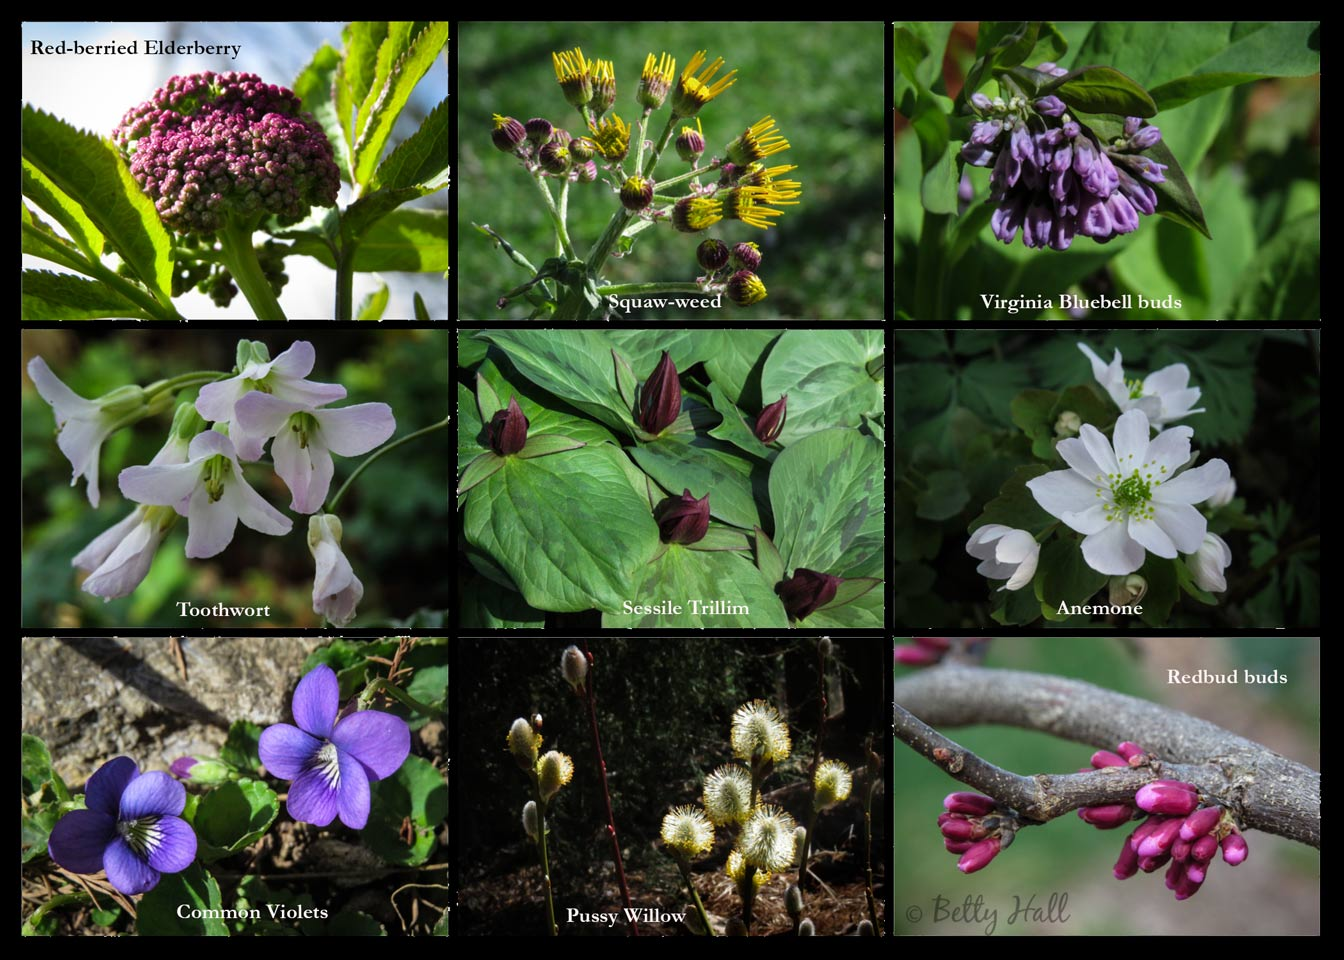 Collage of early spring flowers in our backyard